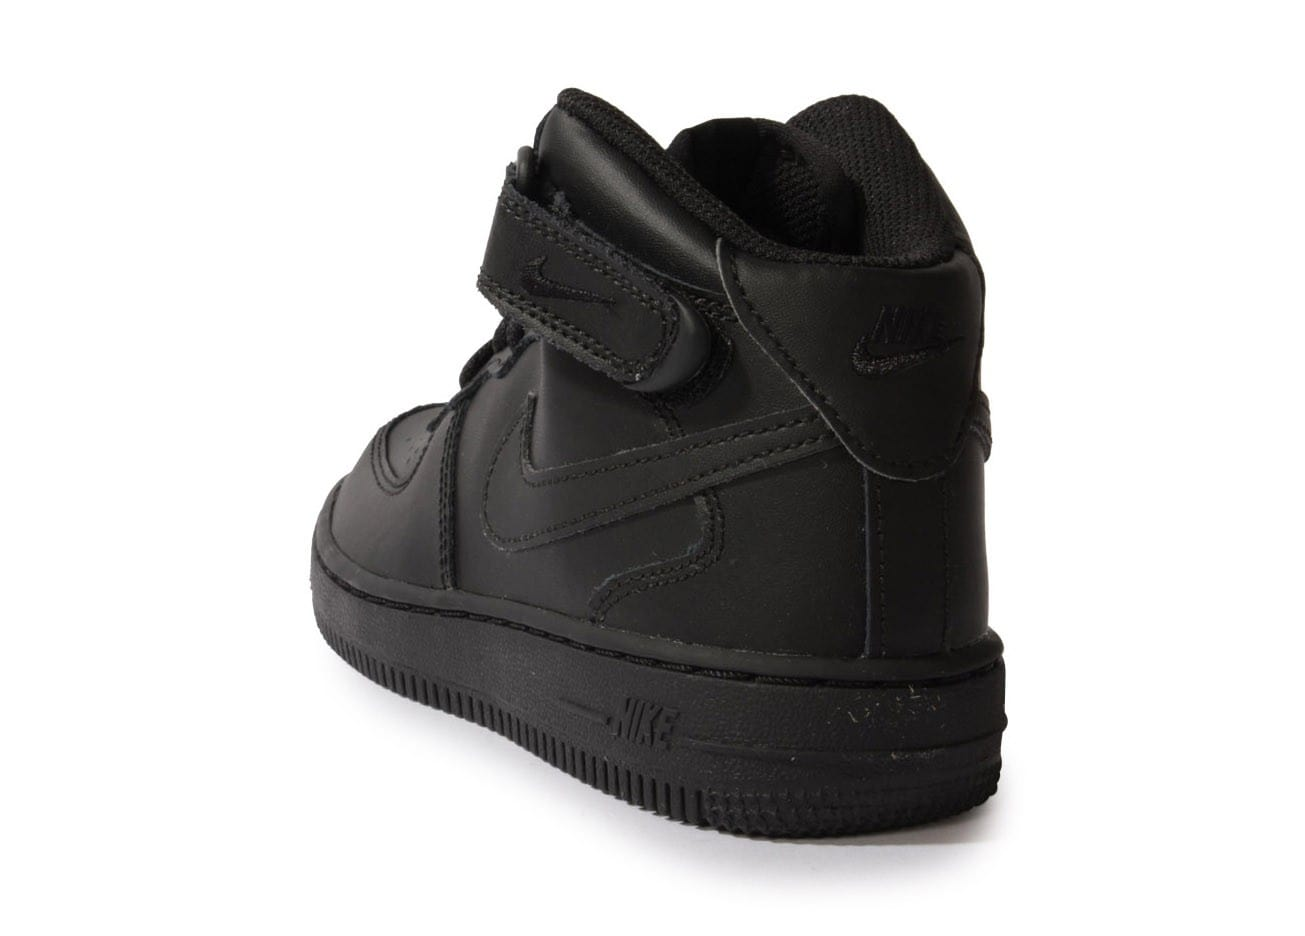 nike air force 1 mid enfant noire chaussures chaussures chausport. Black Bedroom Furniture Sets. Home Design Ideas